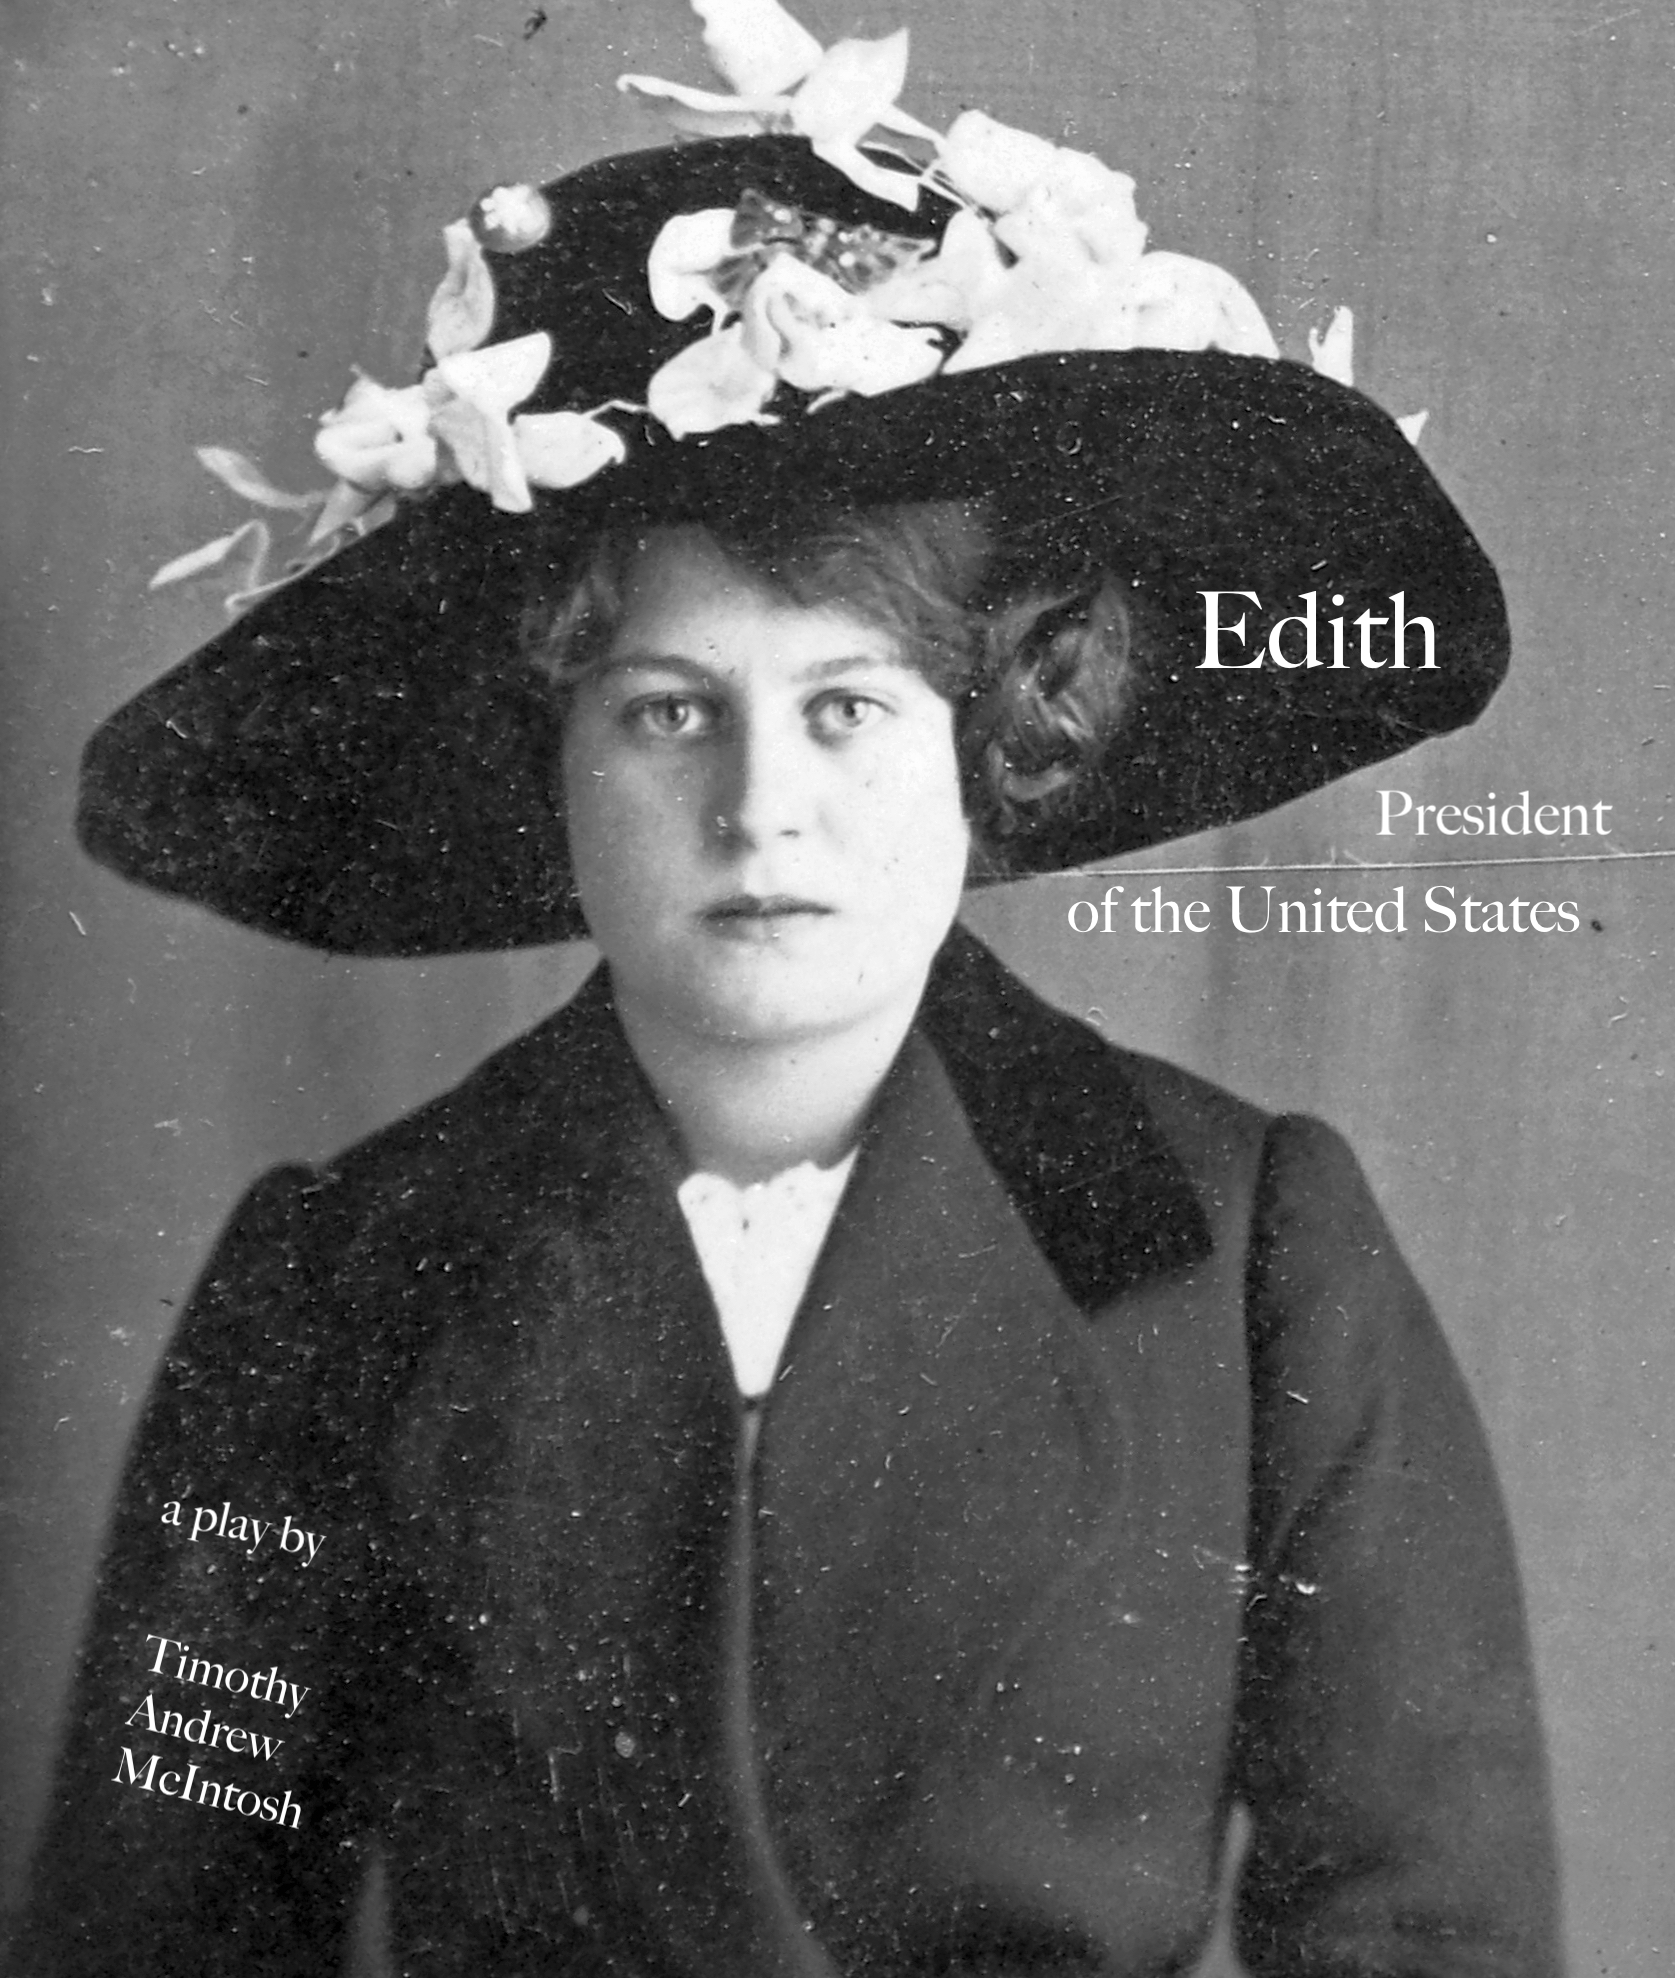 Edith President of the United States poster.jpg